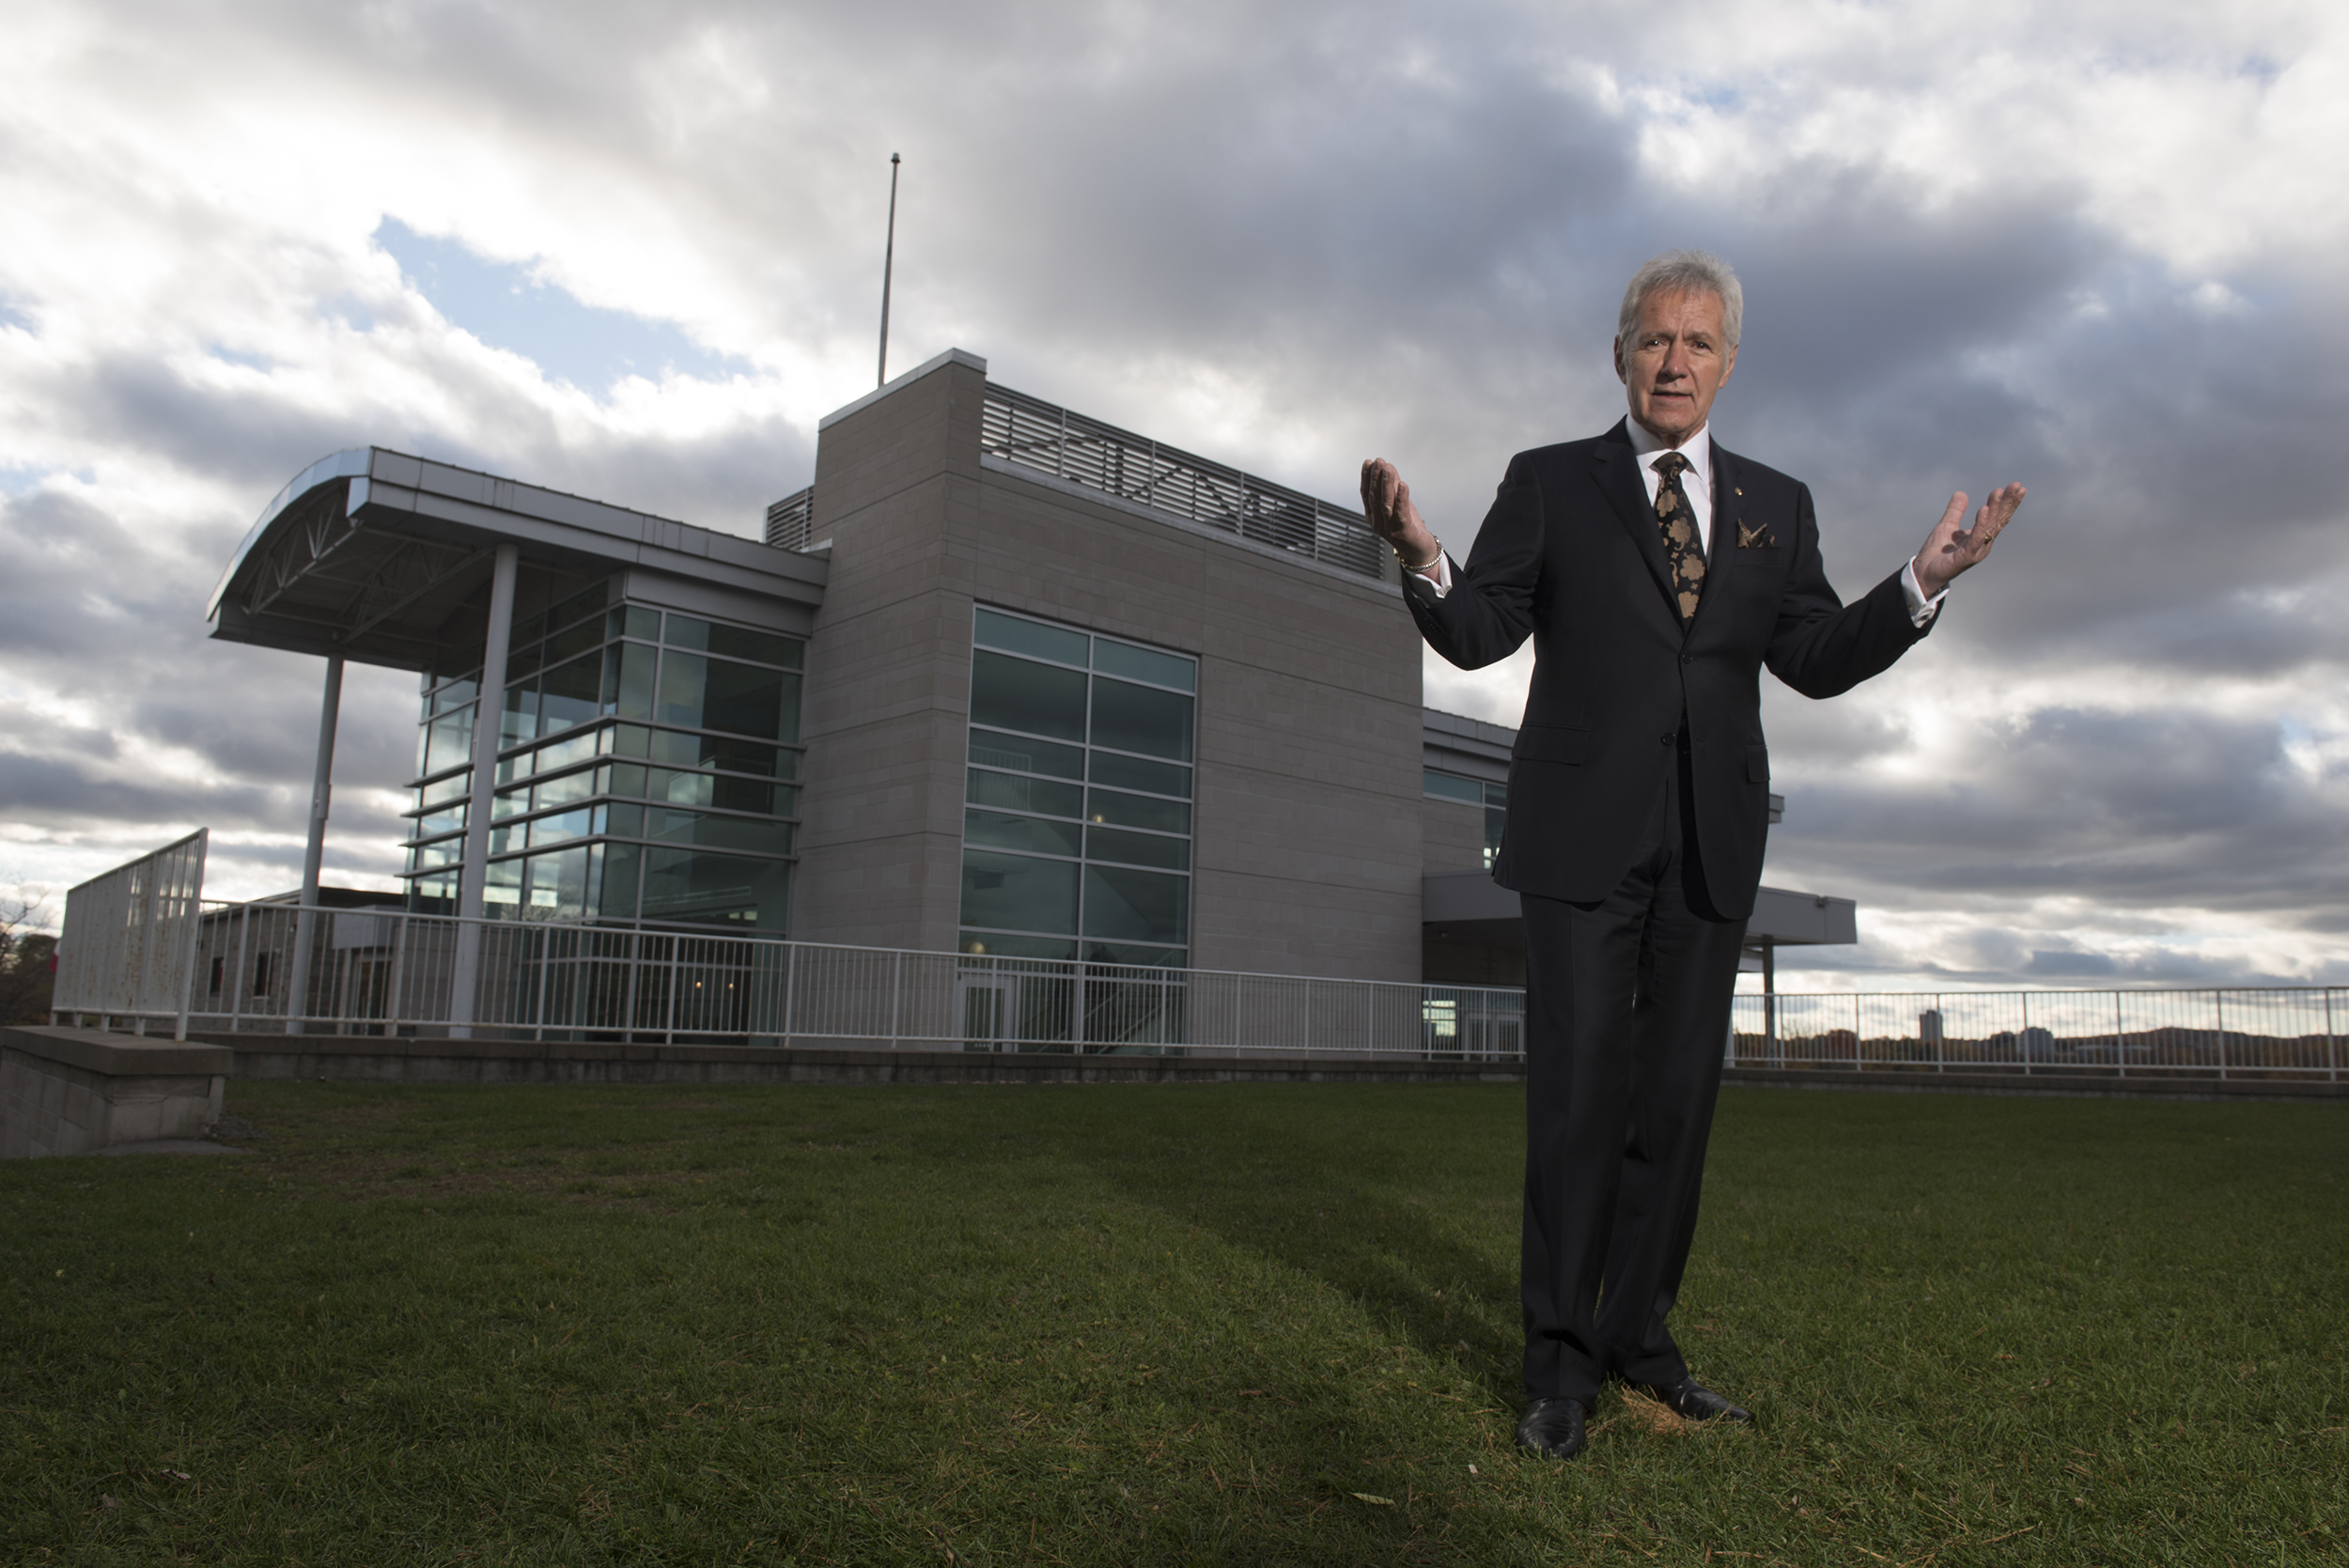 Alex Trebek stands on grass with the Royal Canadian Geographical Society Headquarters behind him